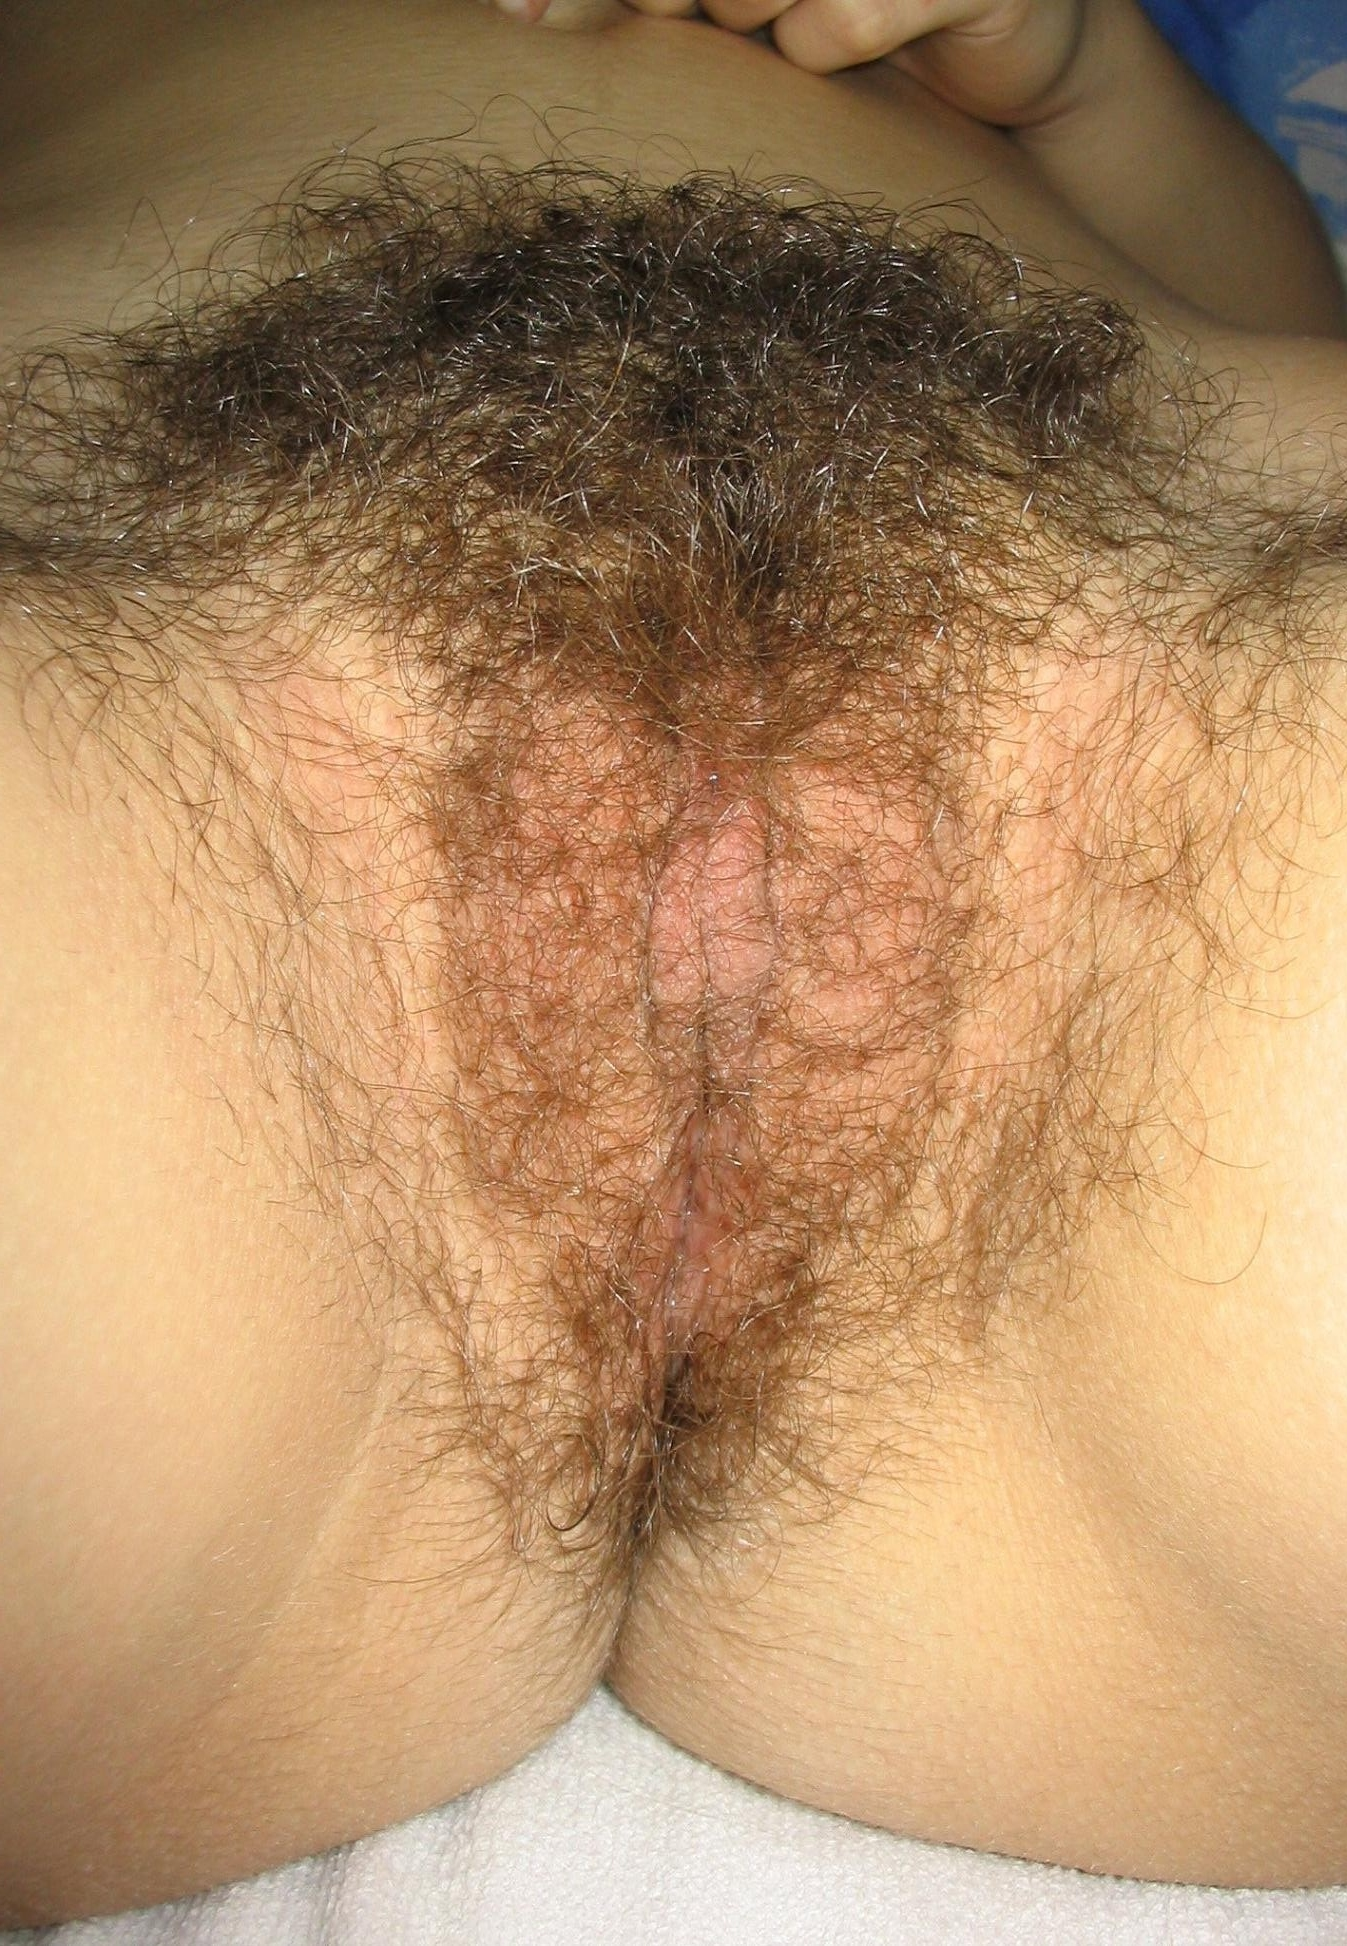 file:pubic hair - vulva unshaved - wikimedia commons